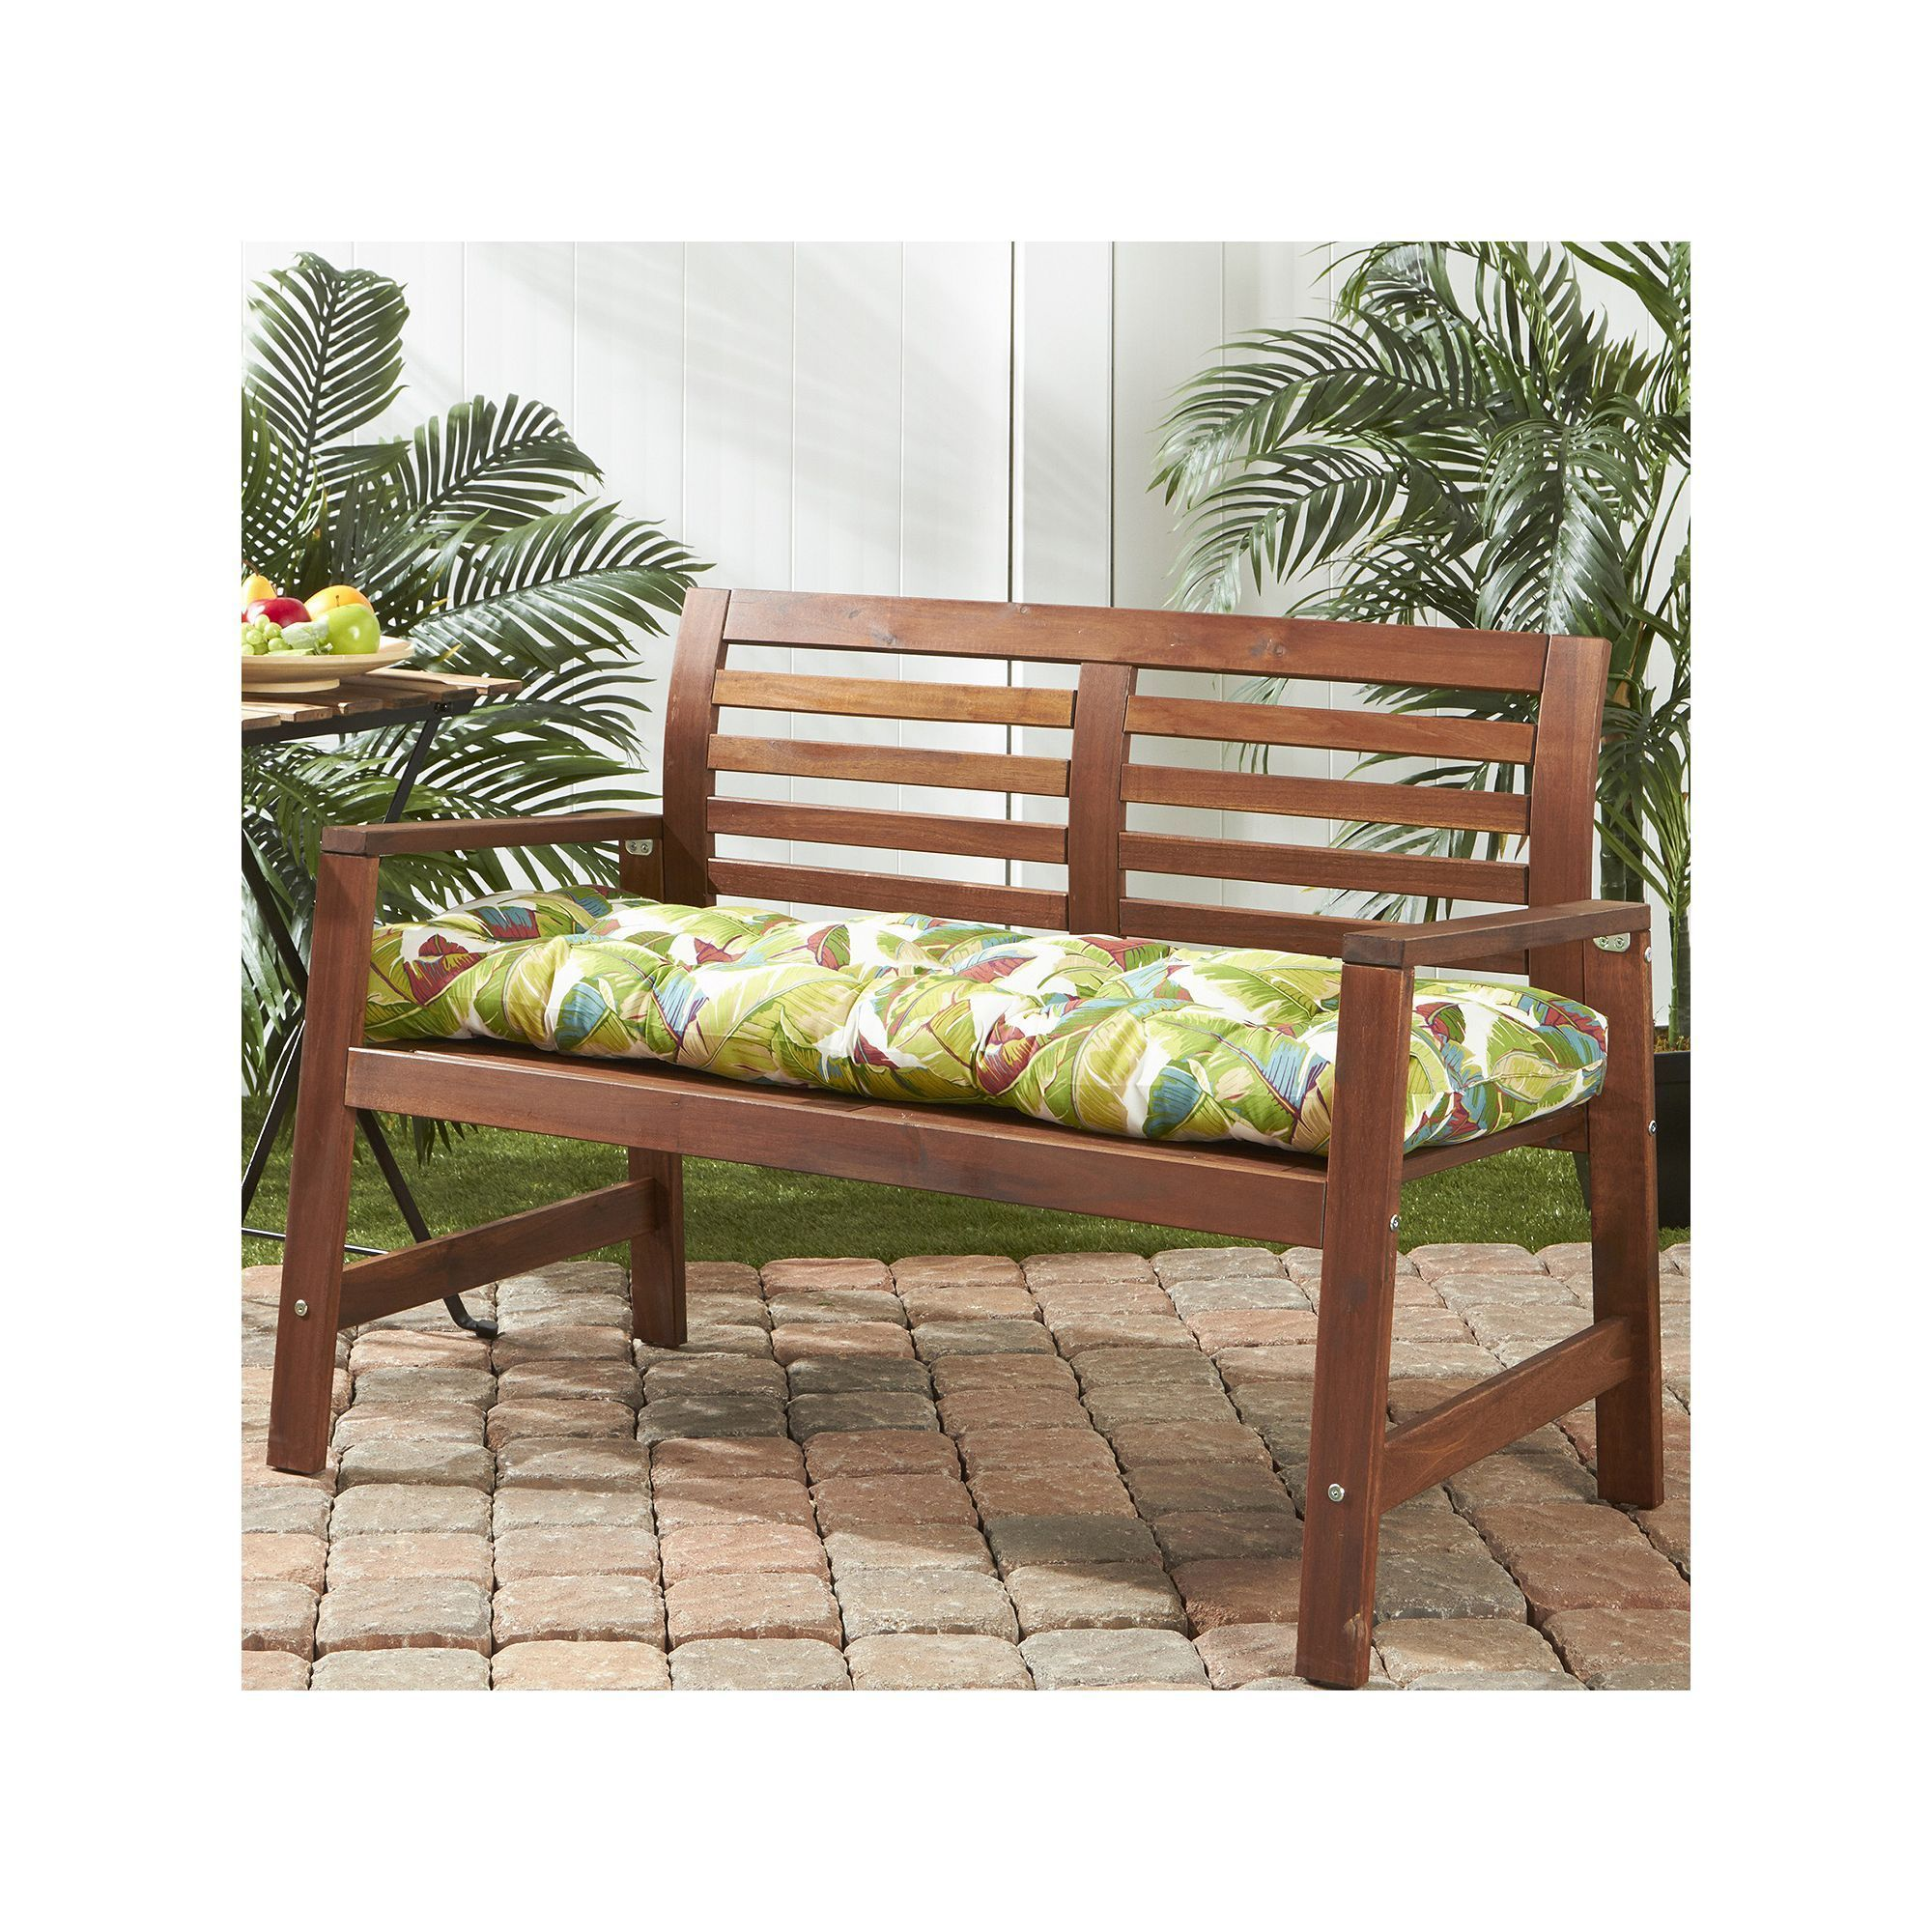 Greendale Home Fashions Outdoor Bench Cushion Multicolor With Images Patio Seat Cushions Porch Swing Bench Cushions